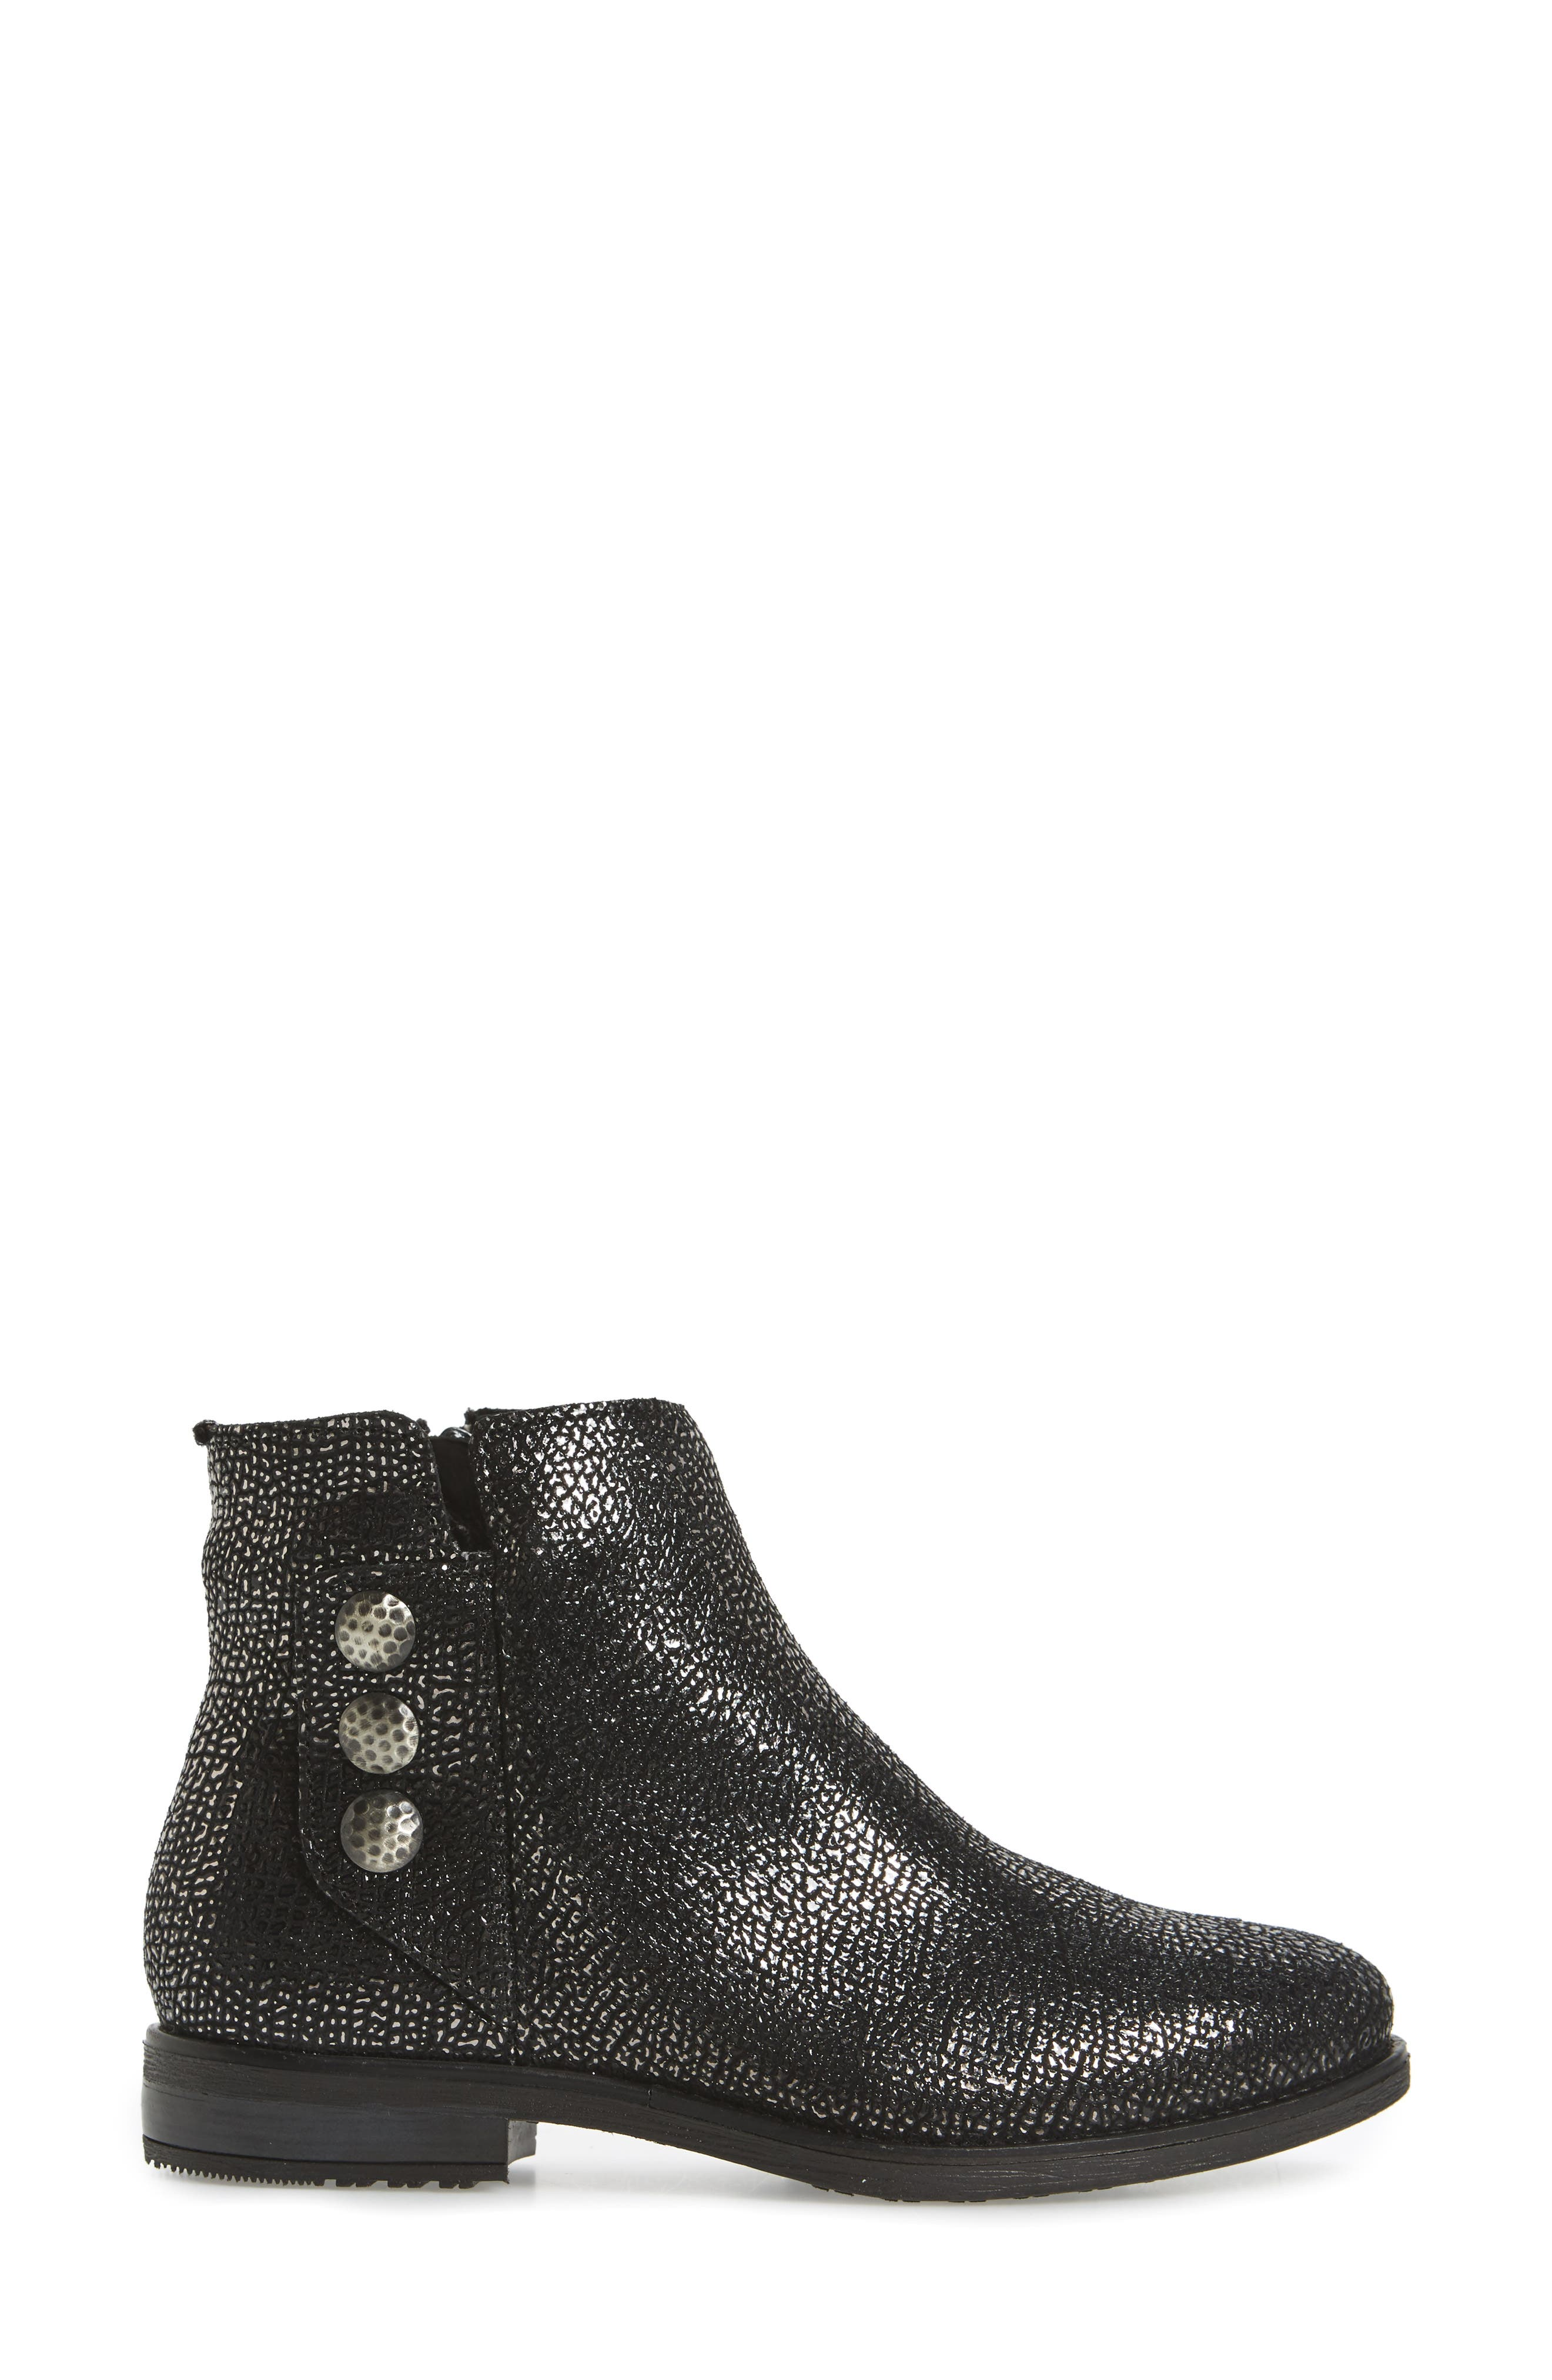 Sheridan Waterproof Bootie,                             Alternate thumbnail 3, color,                             001